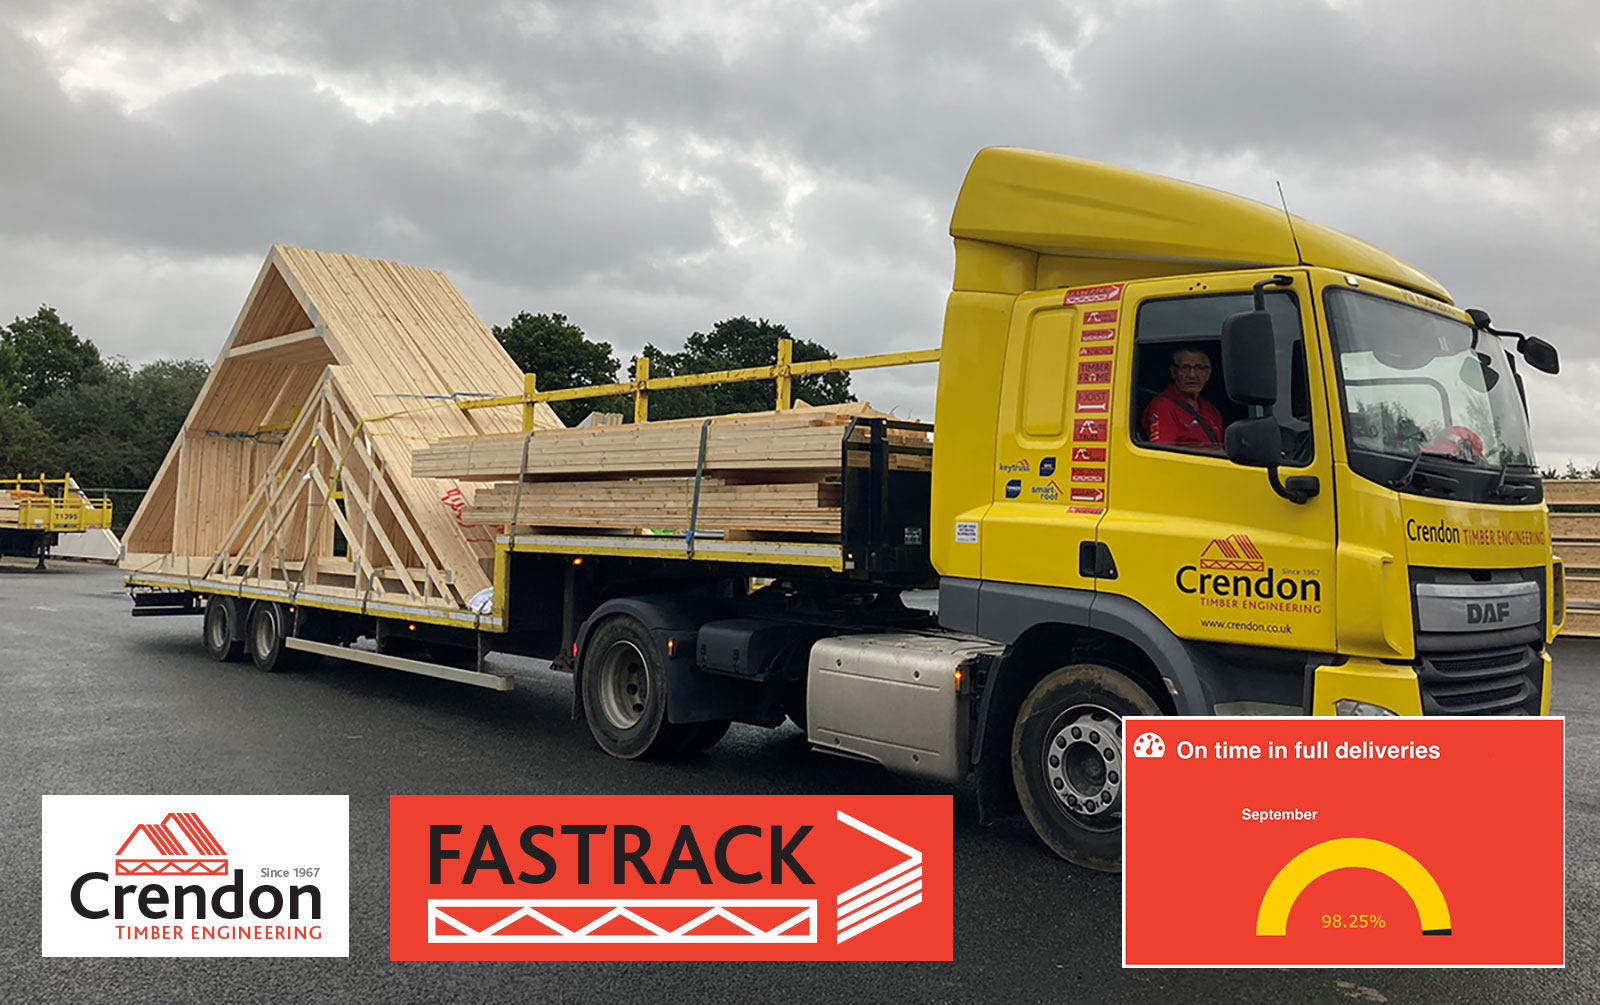 Mr Rooftastic making another 100% On Time In Full Delivery